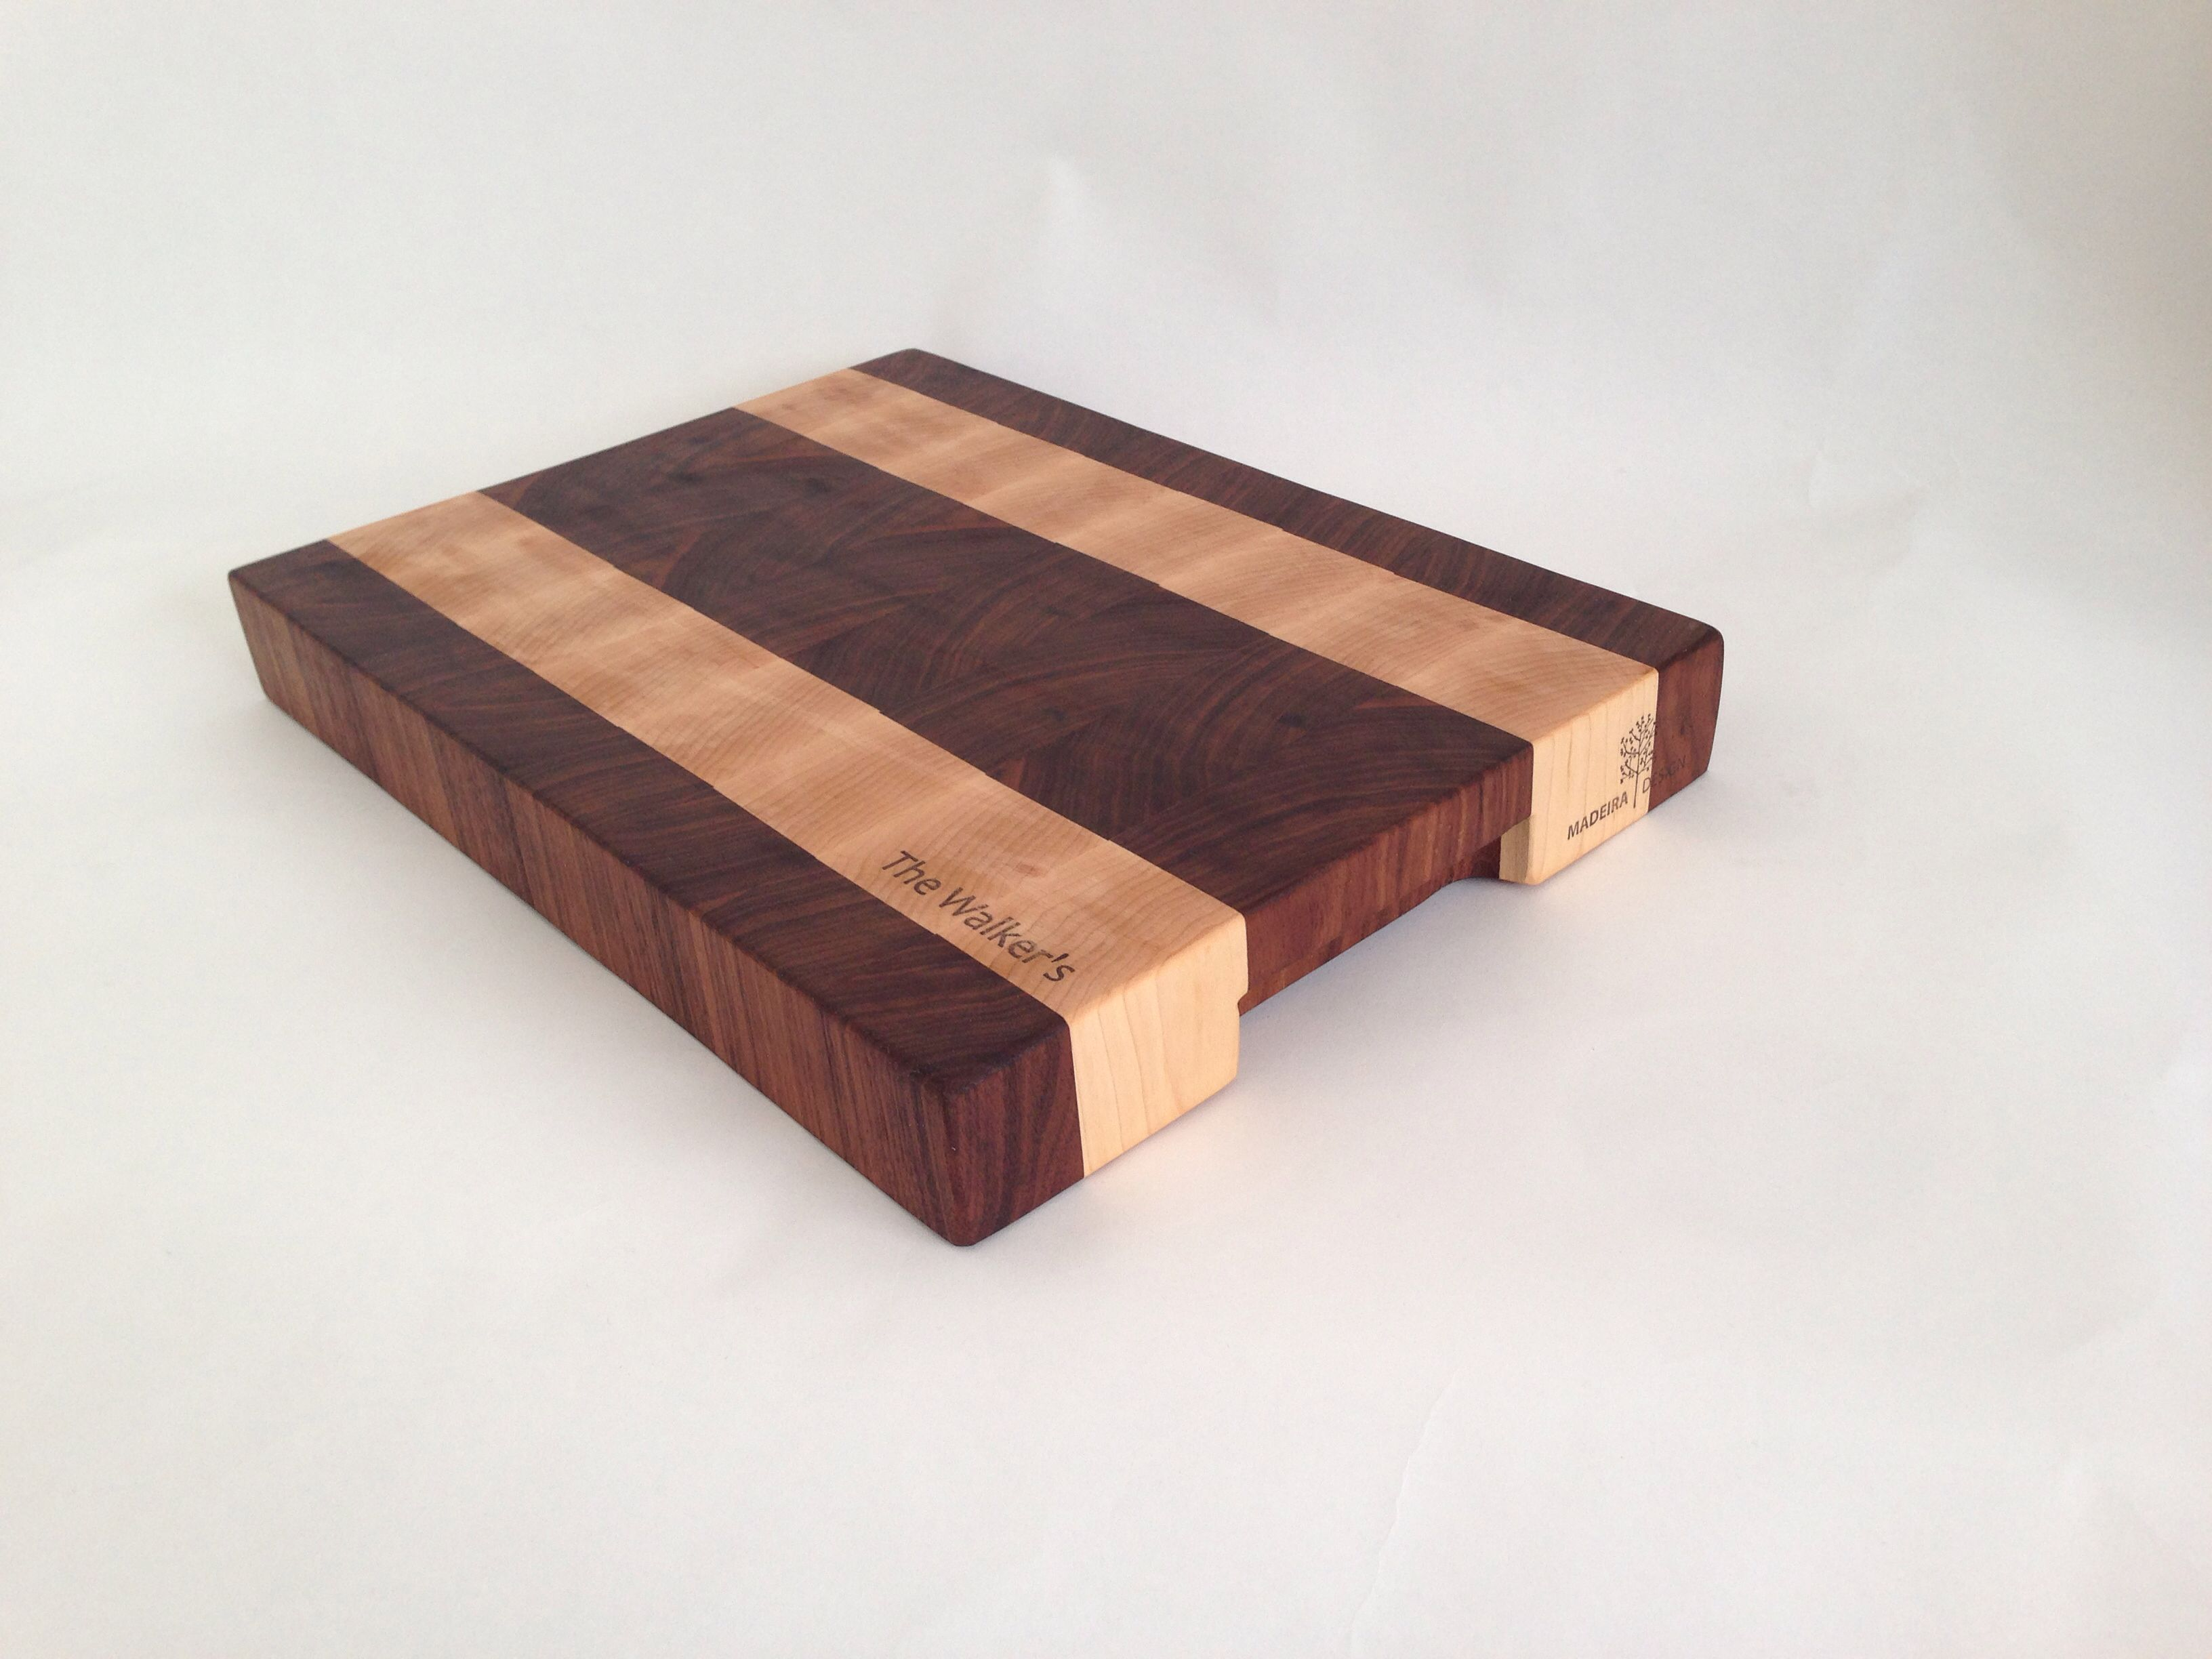 Walnut And Maple End Grain Cutting Board With Routed Handles